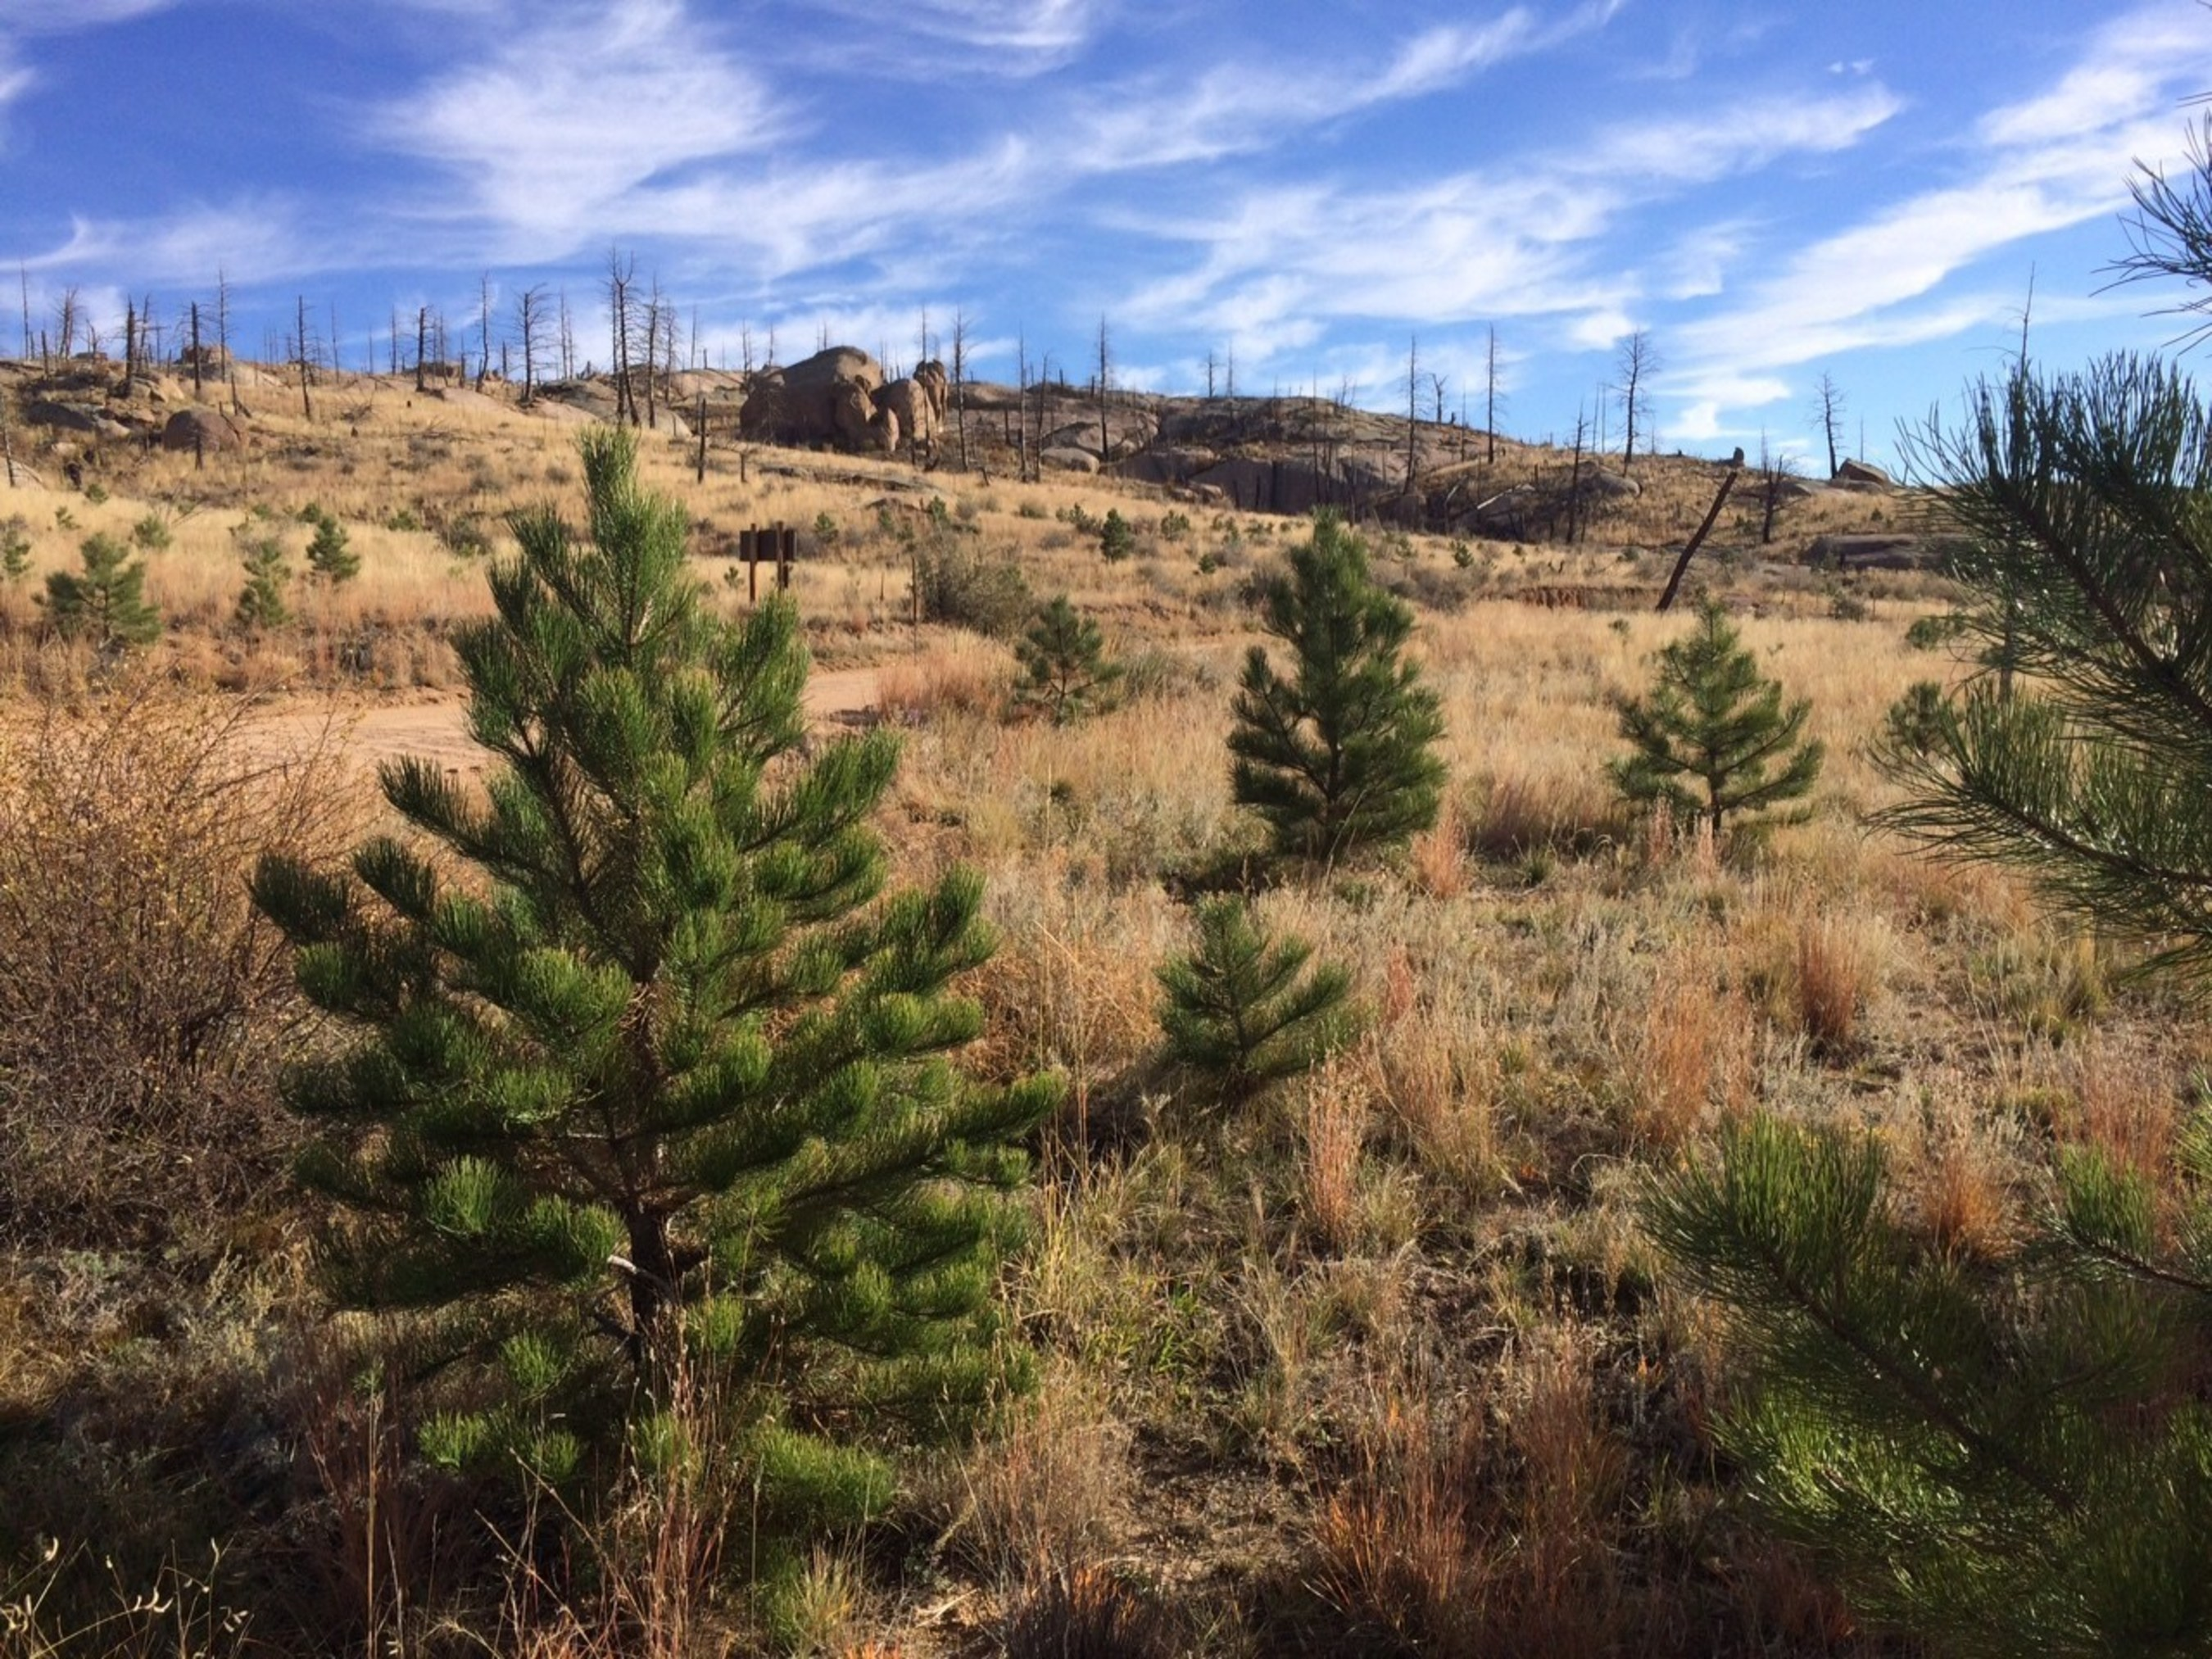 During the last decade, the Enterprise 50 Million Tree Pledge has supported more than 80 reforestation projects and planted more than 50 different species of trees across 15 states. Pictured is an example of a ten-year-old tree from Pike National Forest.